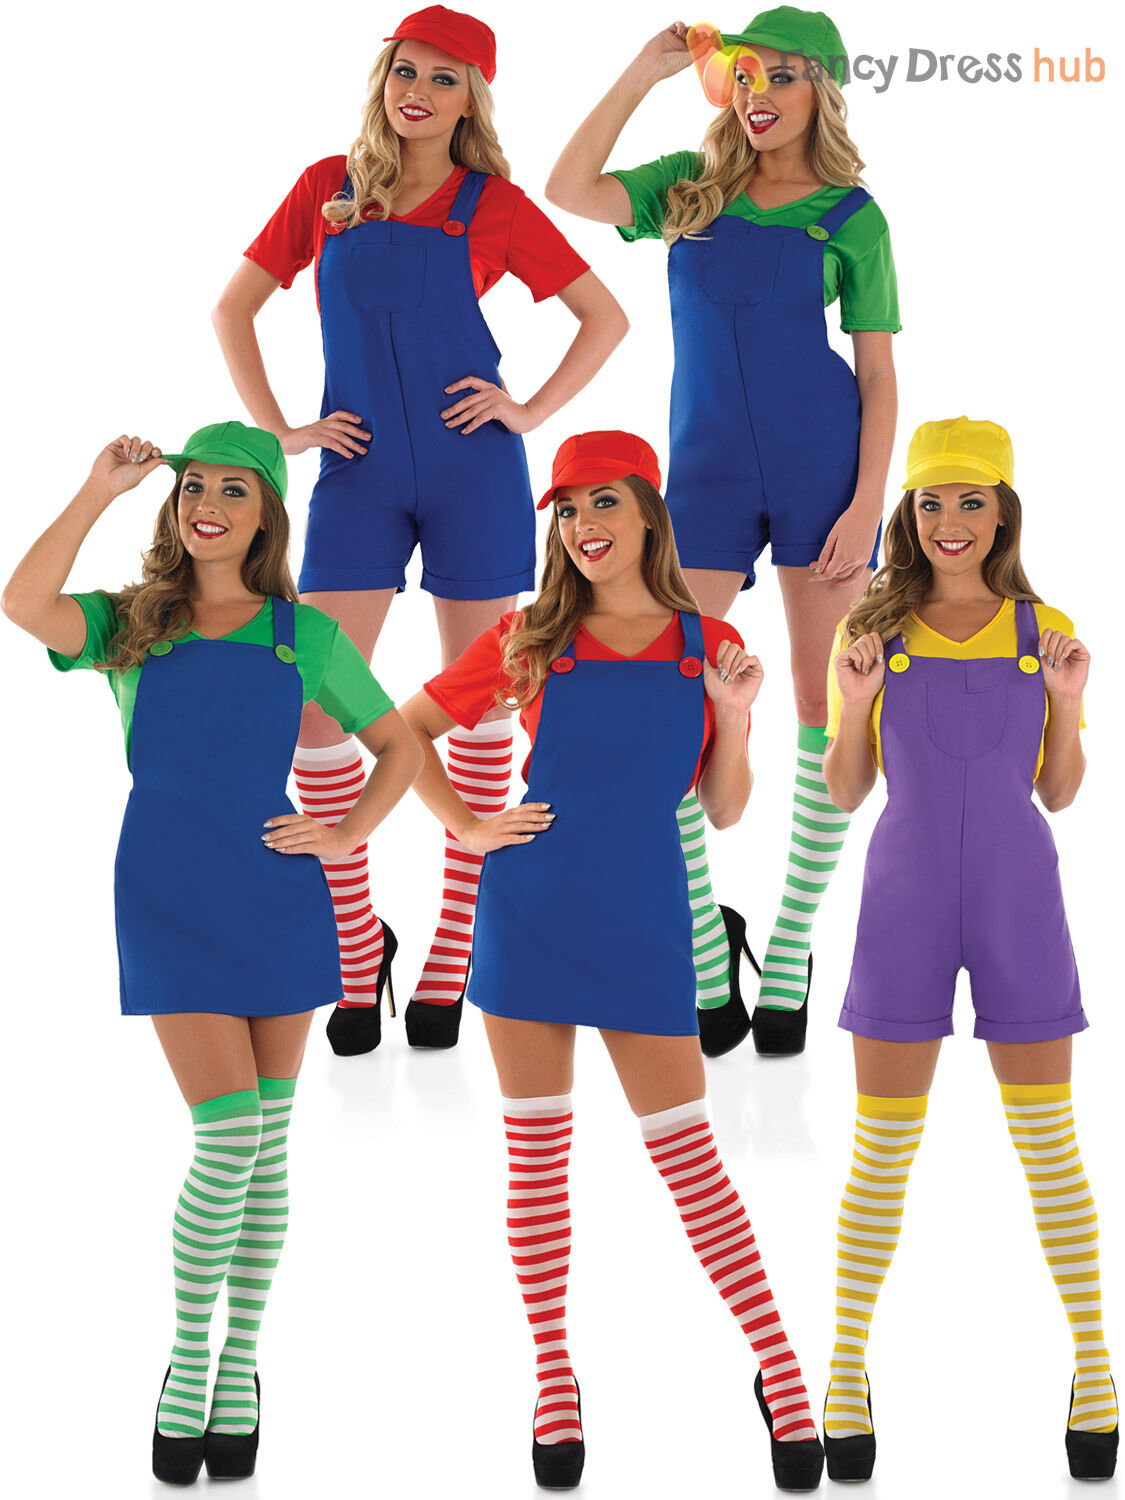 ladies super mario luigi costume adult plumber bro fancy dress women 80s outfit. Black Bedroom Furniture Sets. Home Design Ideas